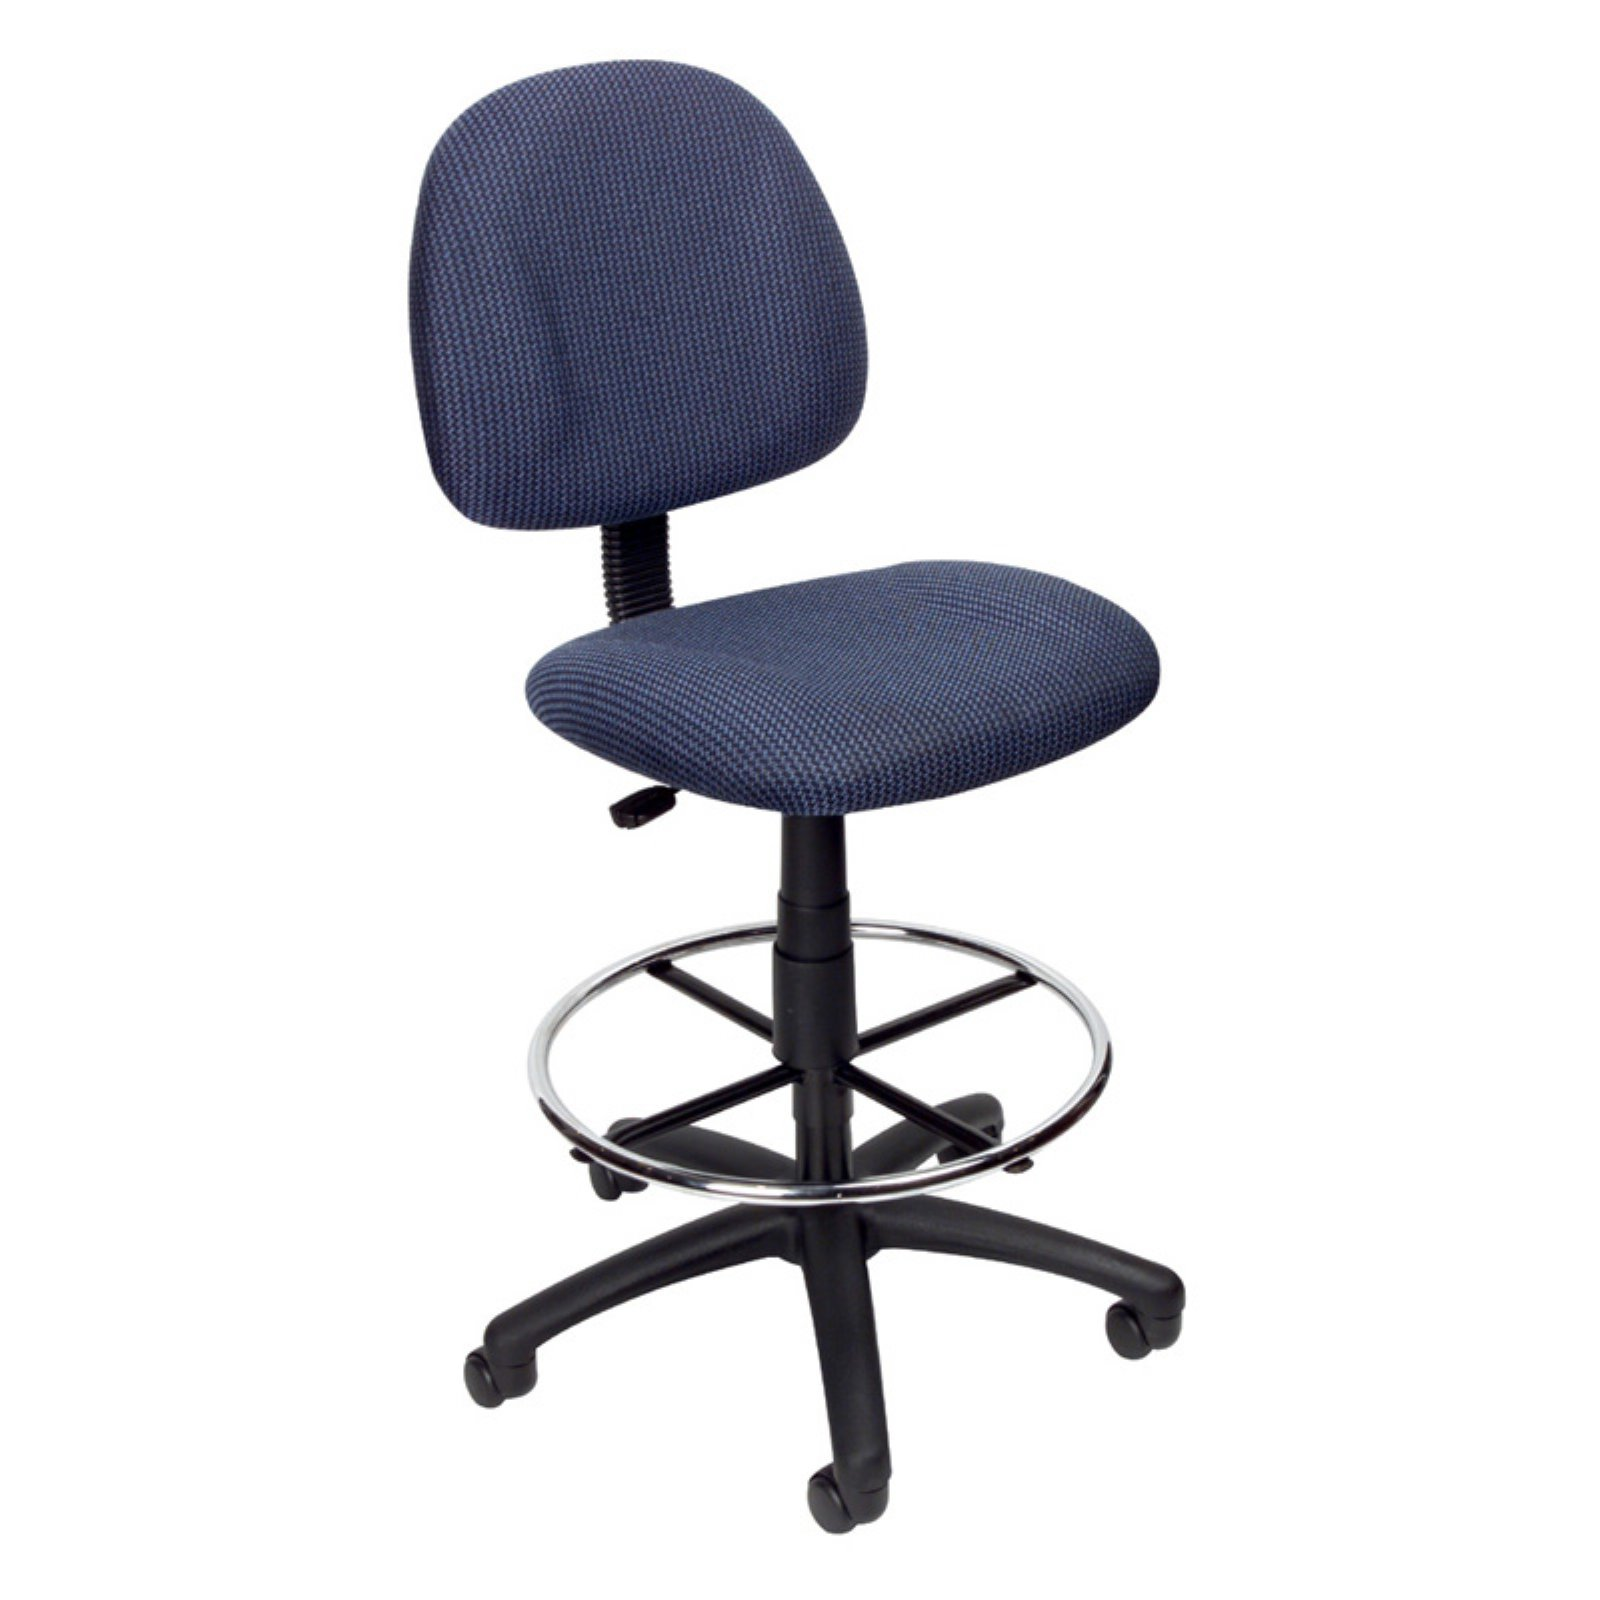 Boss Office Products Black Contoured Comfort Adjustable Rolling Drafting Stool Chair - Walmart.com  sc 1 st  Walmart & Boss Office Products Black Contoured Comfort Adjustable Rolling ... islam-shia.org